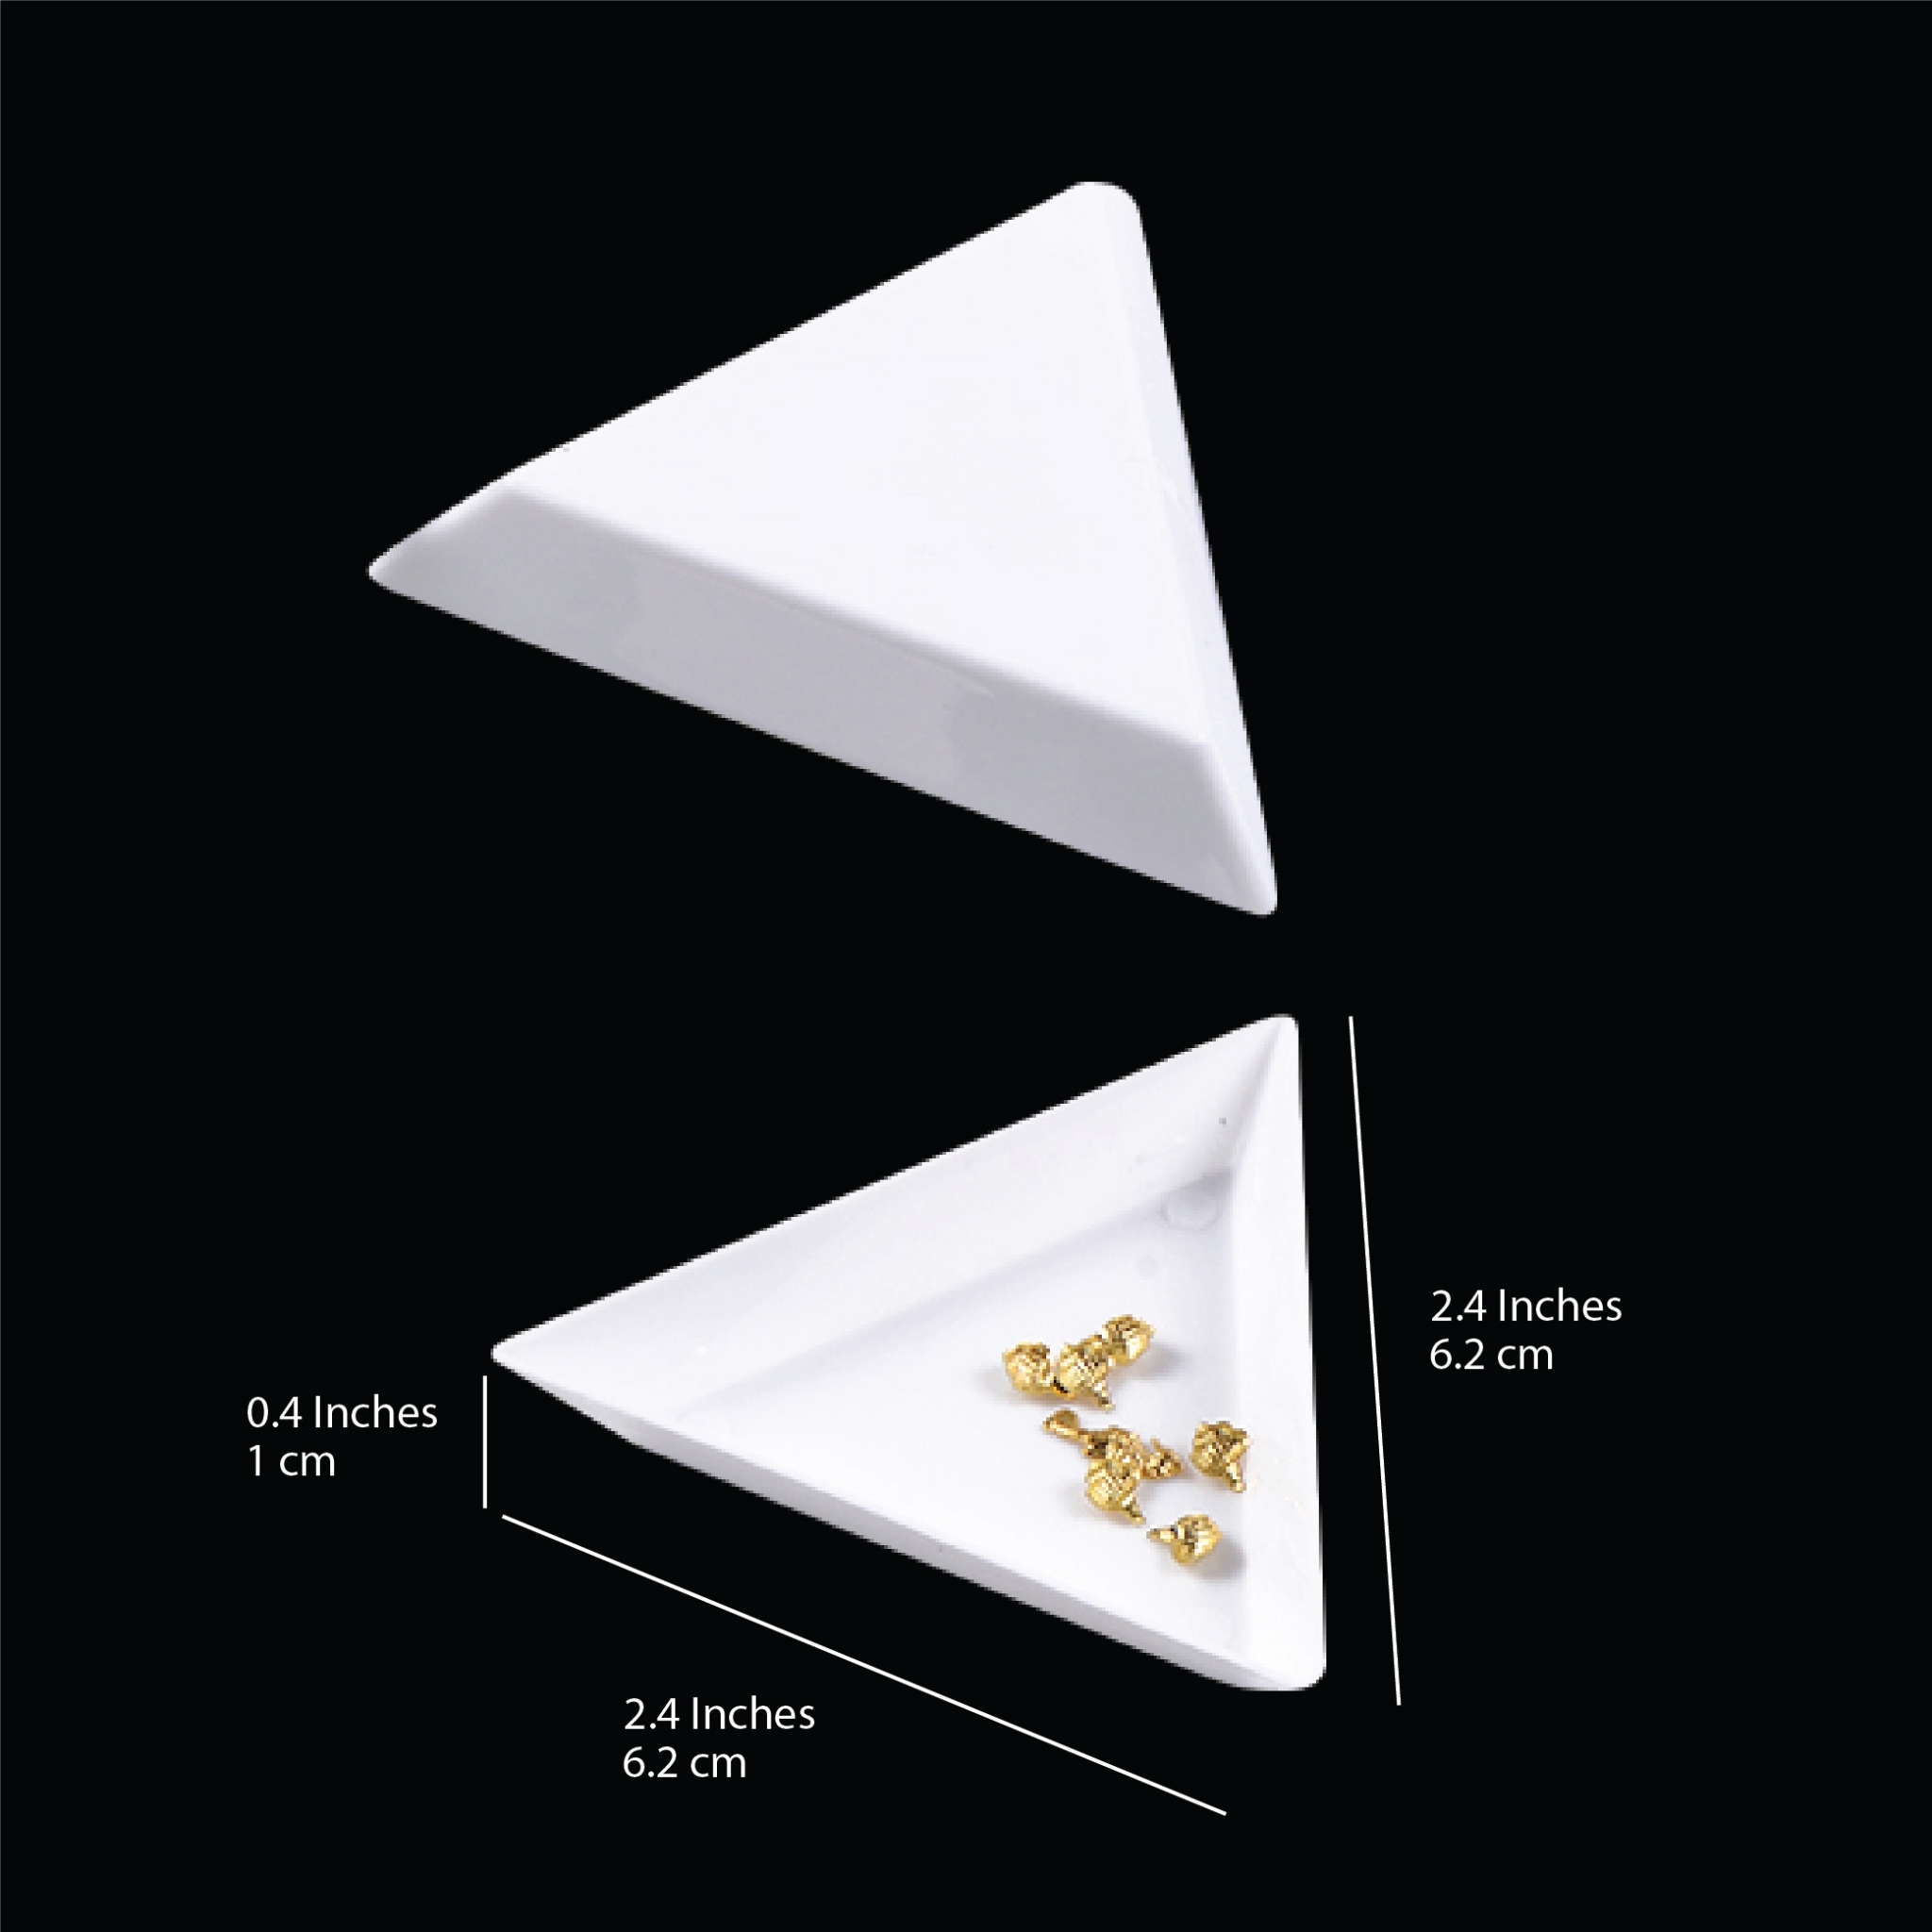 10352 - Triangle Tray#for rhinestones# 5 pcs/bag